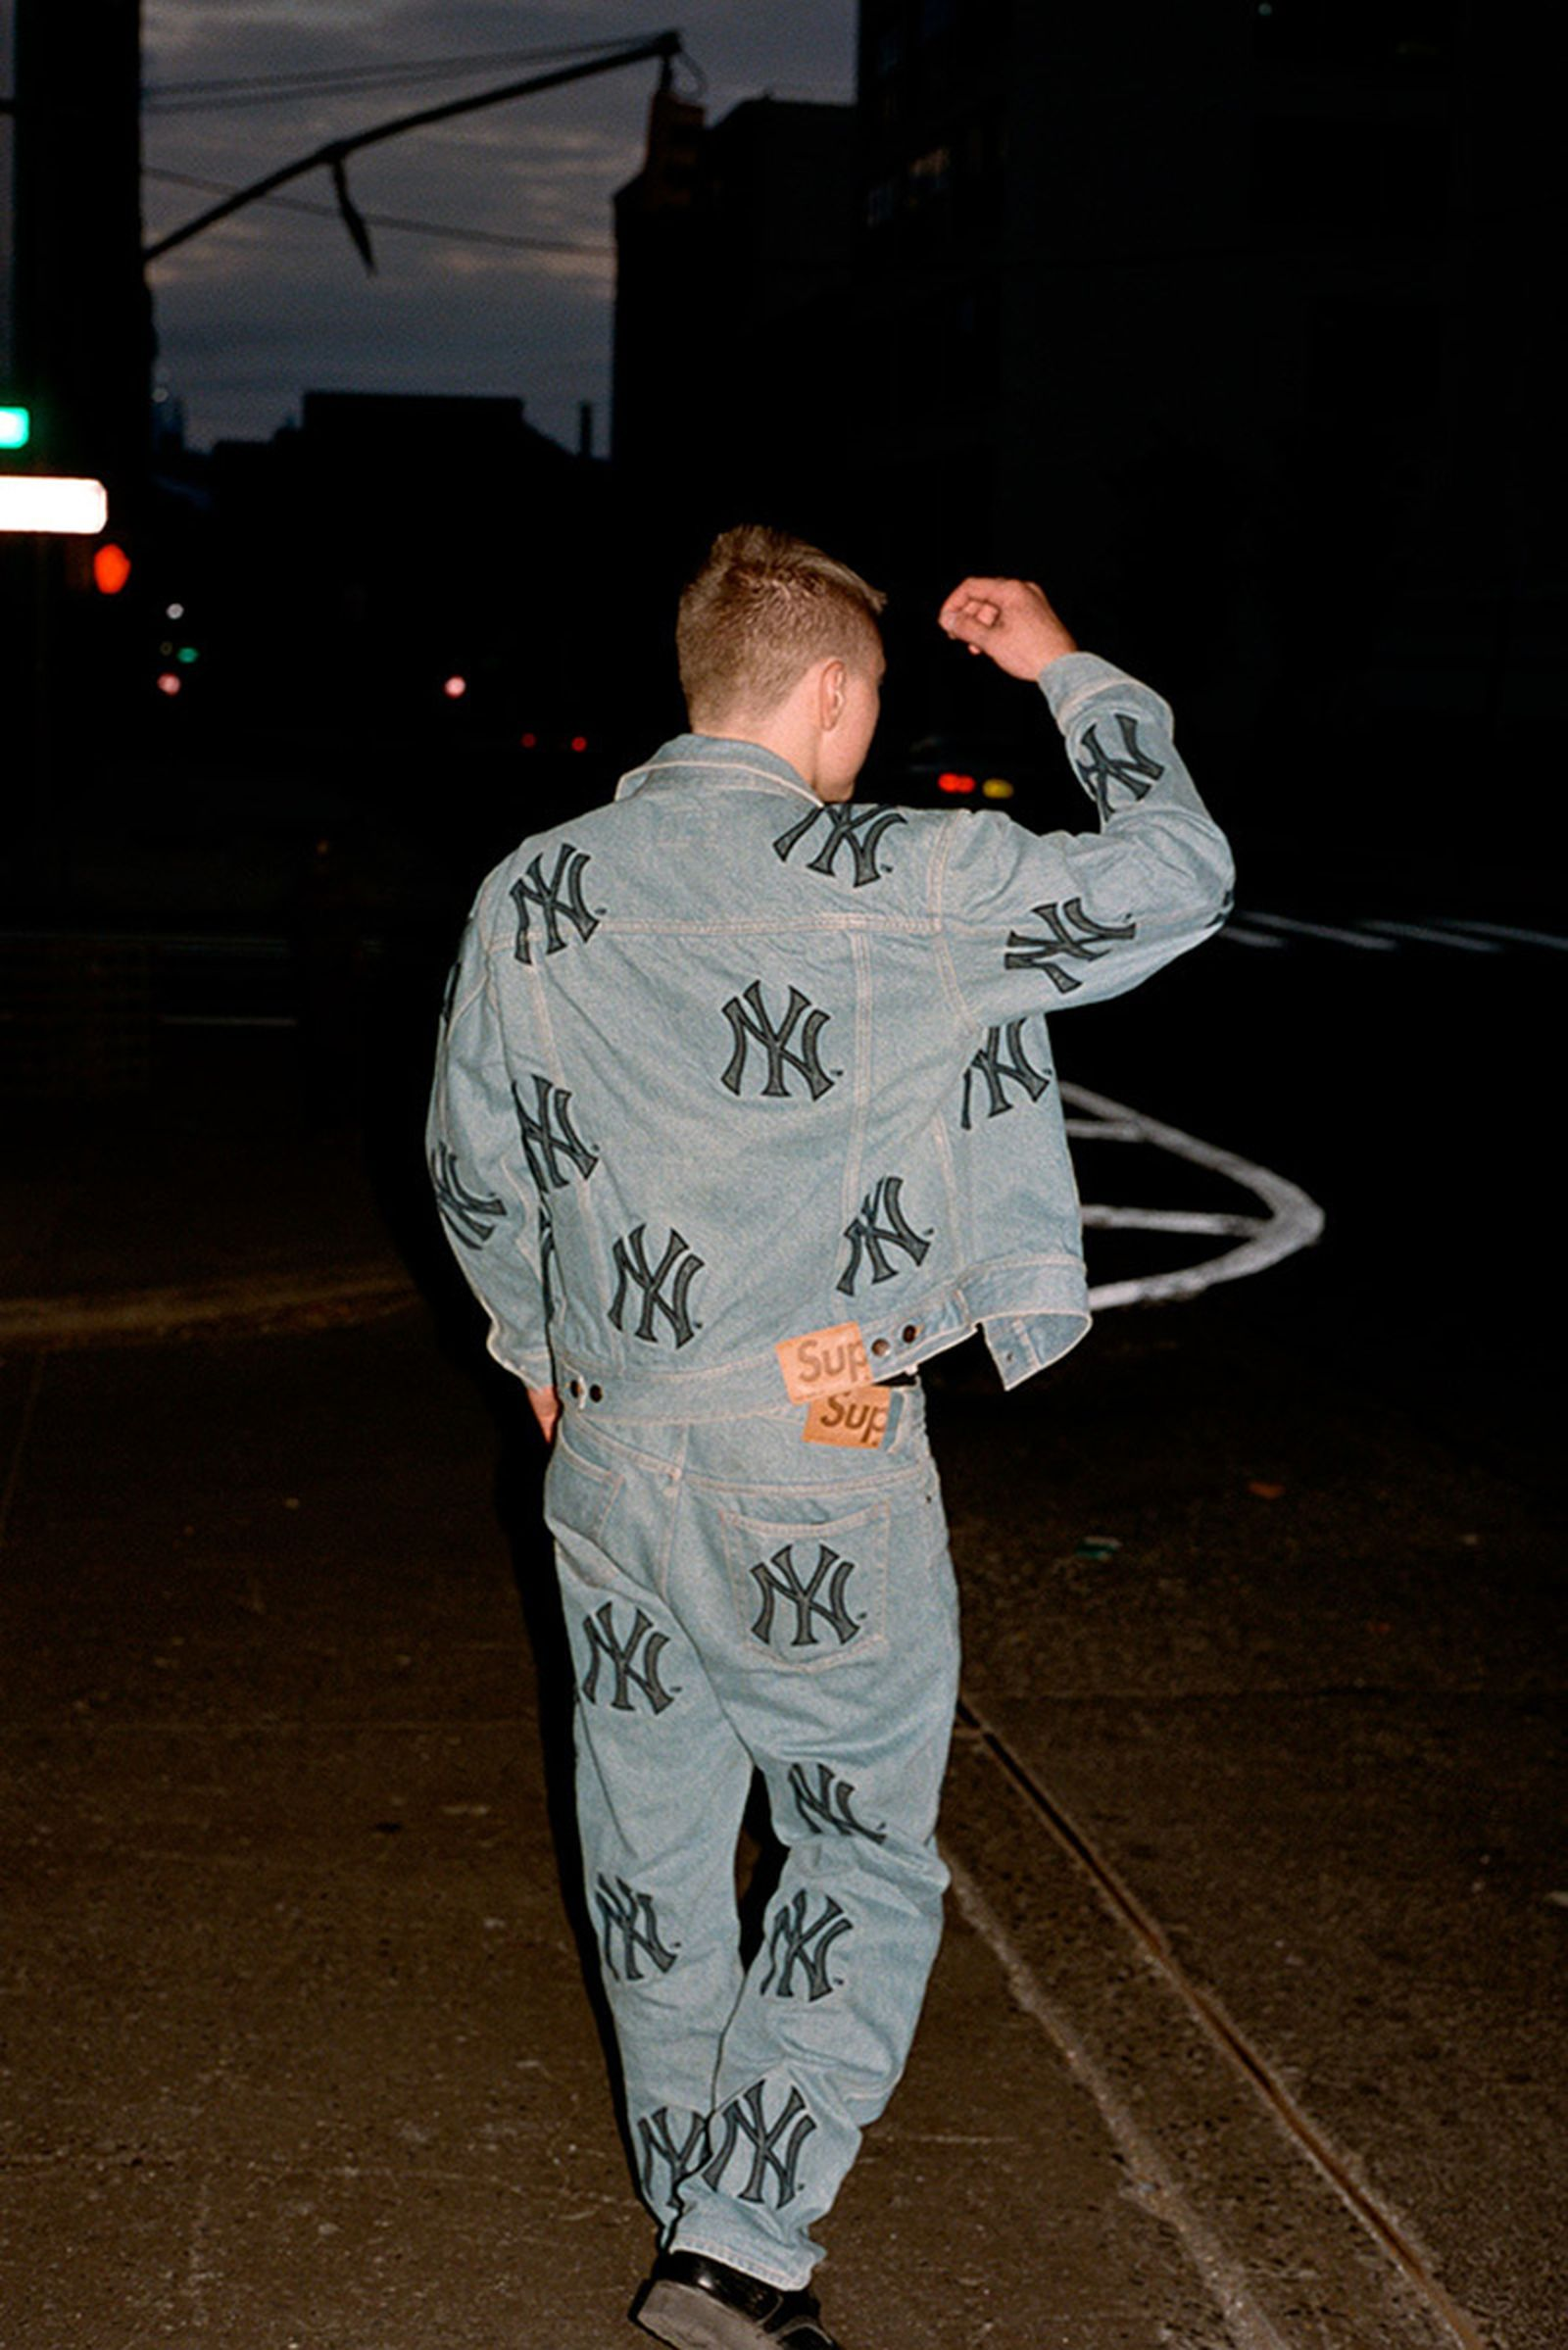 supreme-new-york-yankees-fw21-collection-lb-9